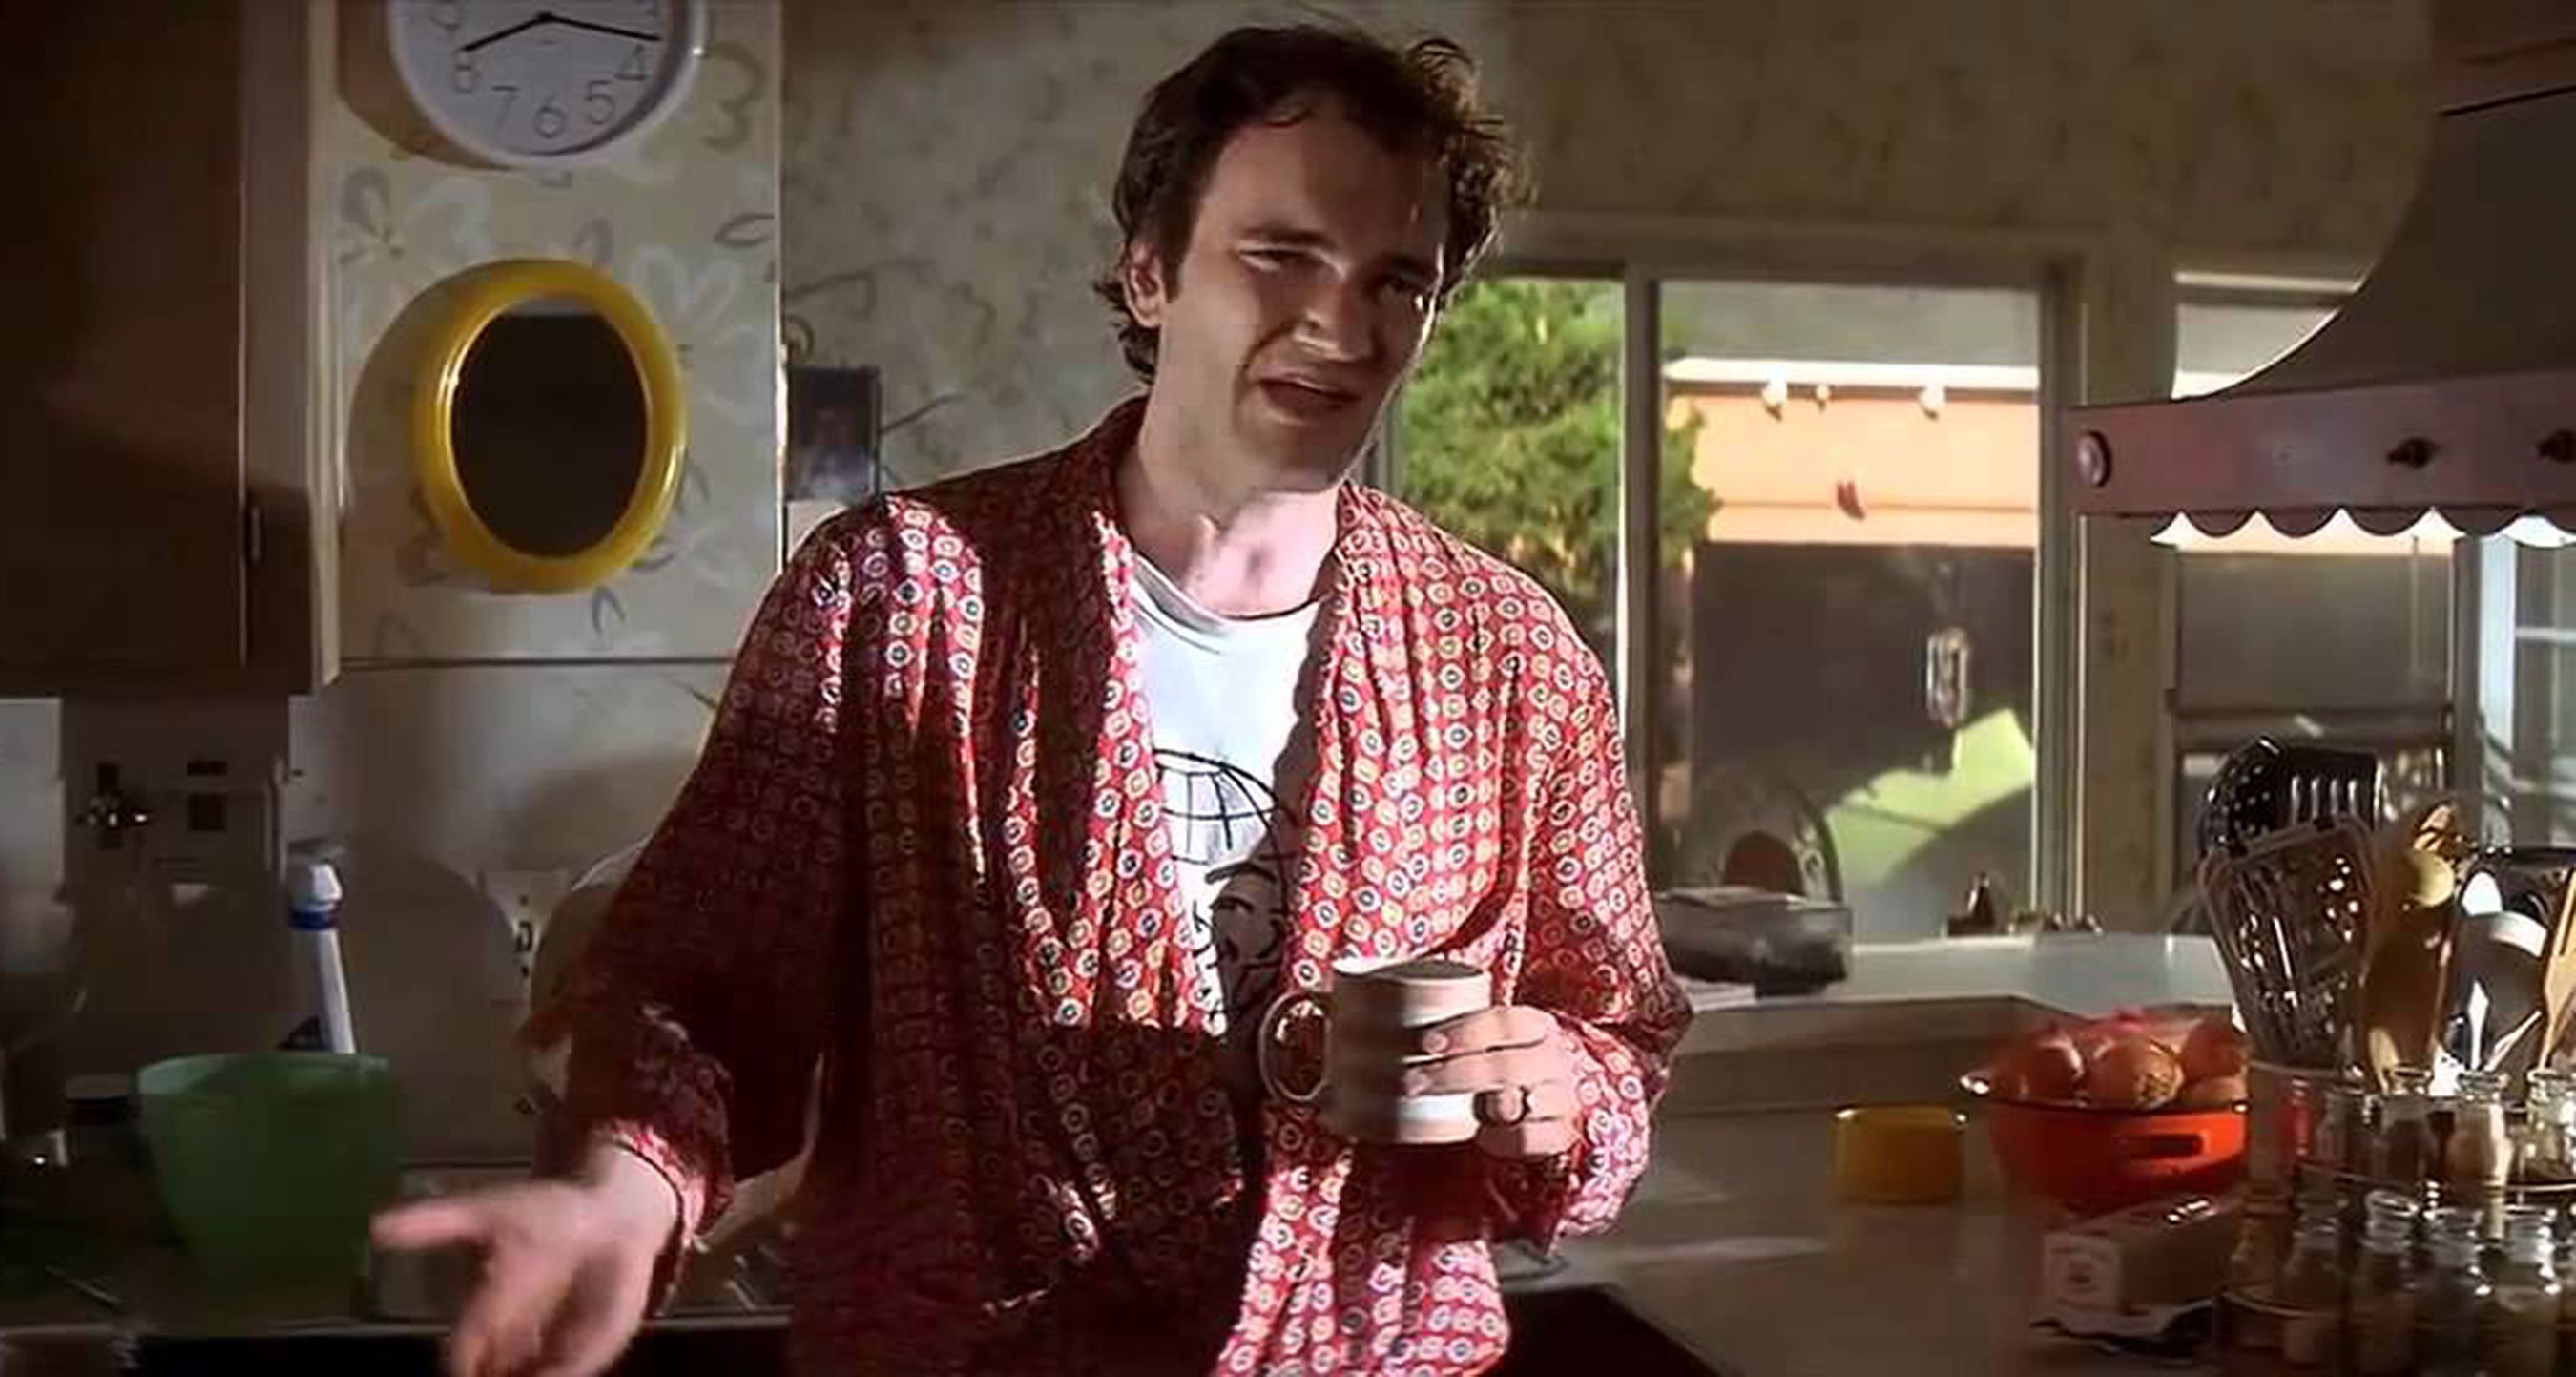 Quentin Tarantino's Pulp Fiction movie house for sale in Studio City